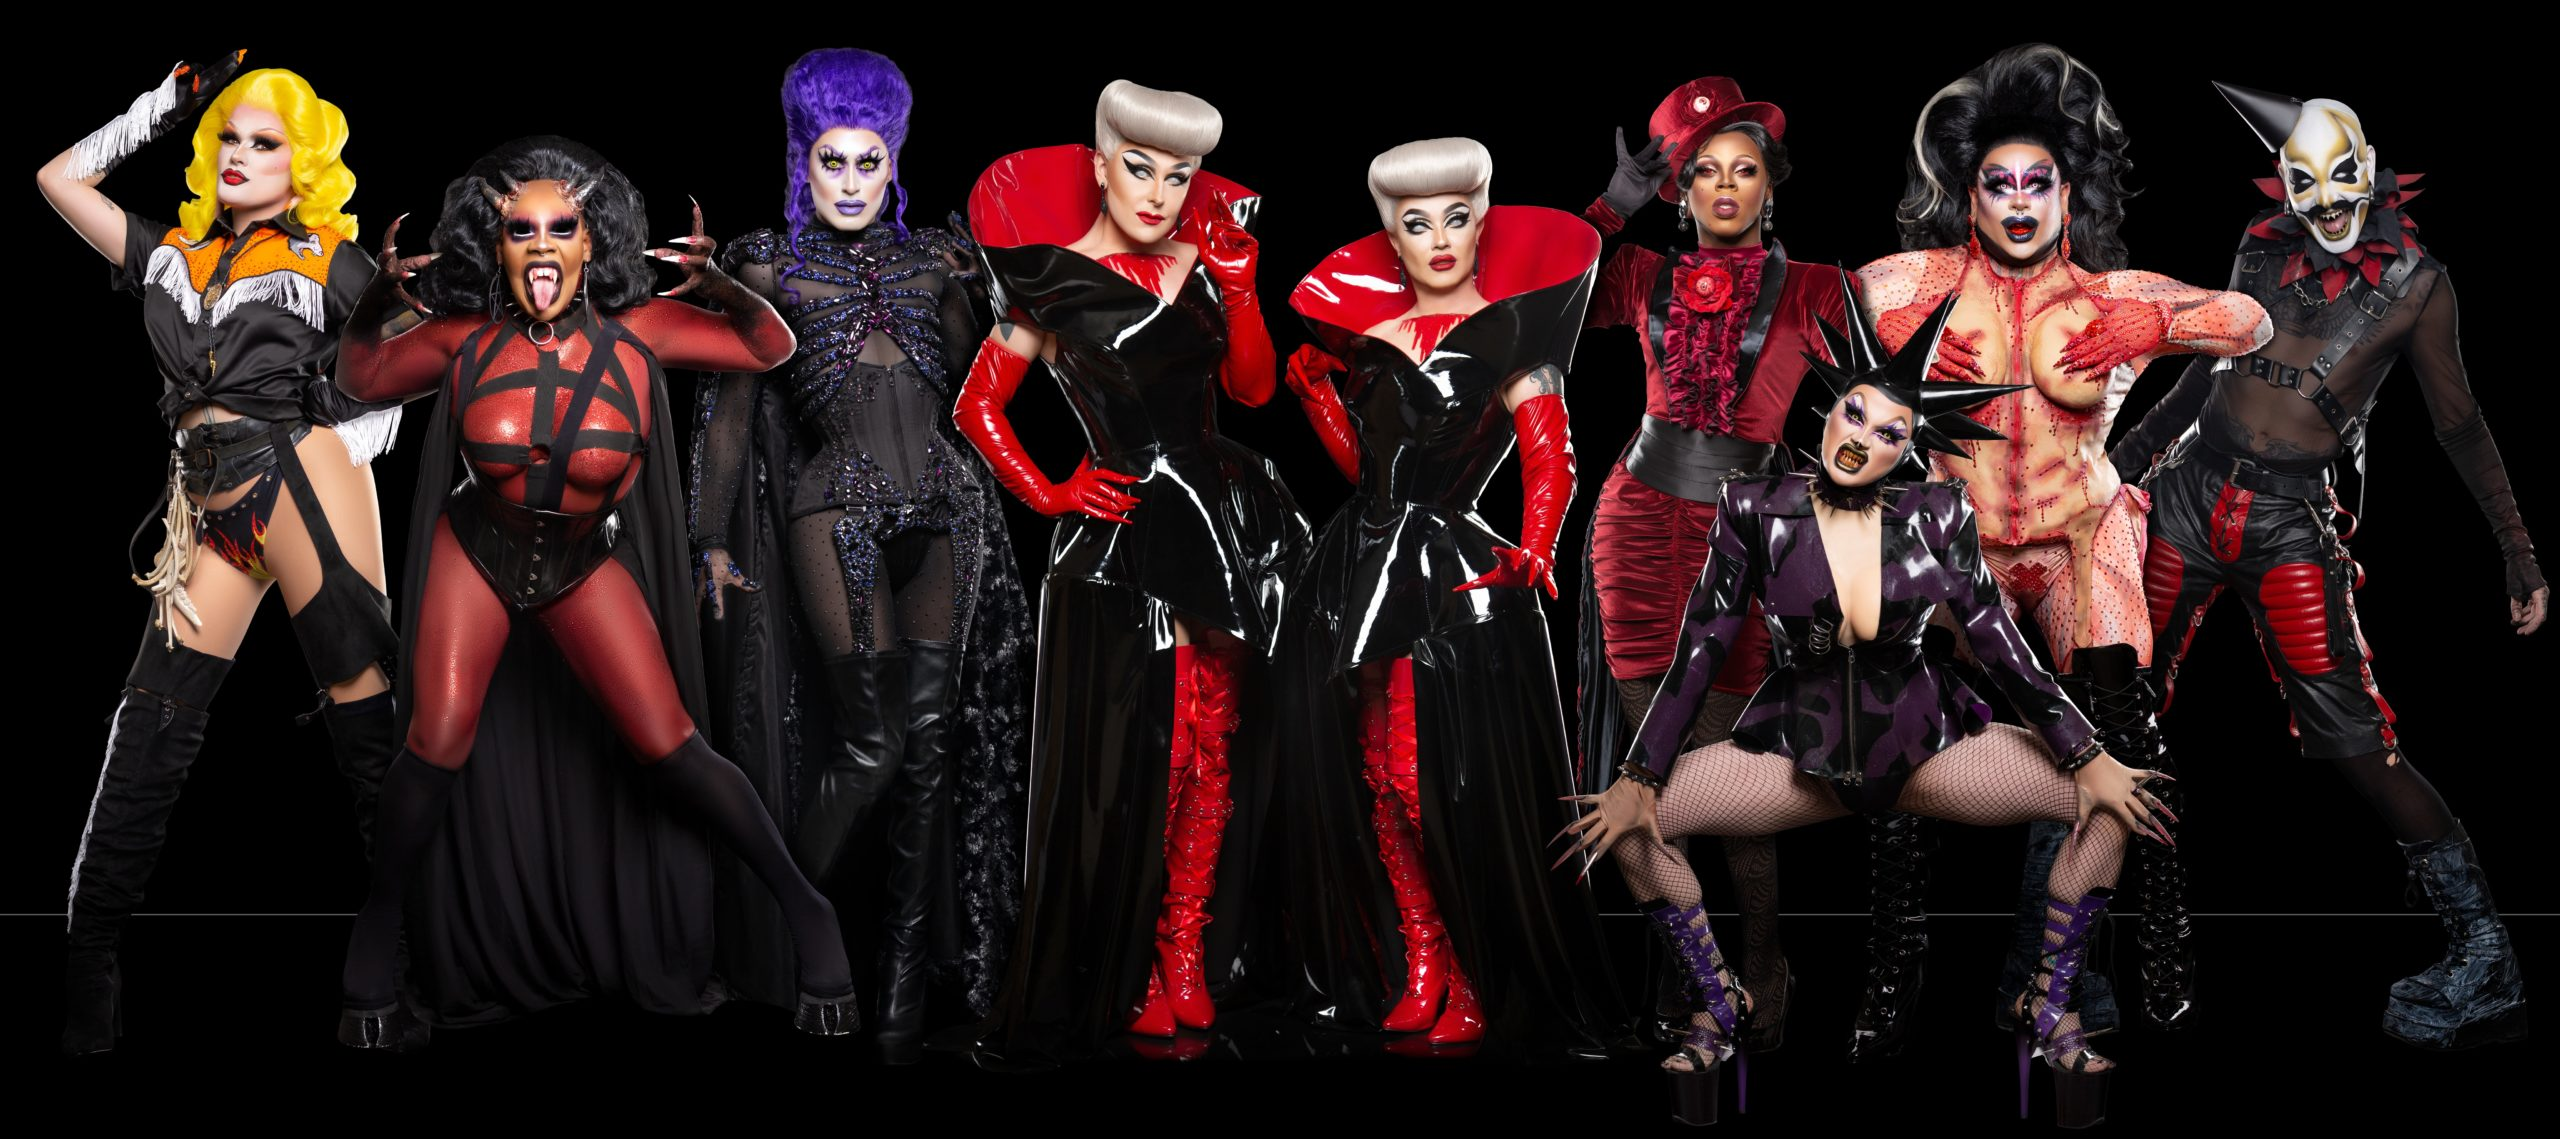 The Boulet Brothers and the cast of Dragula: Resurrection